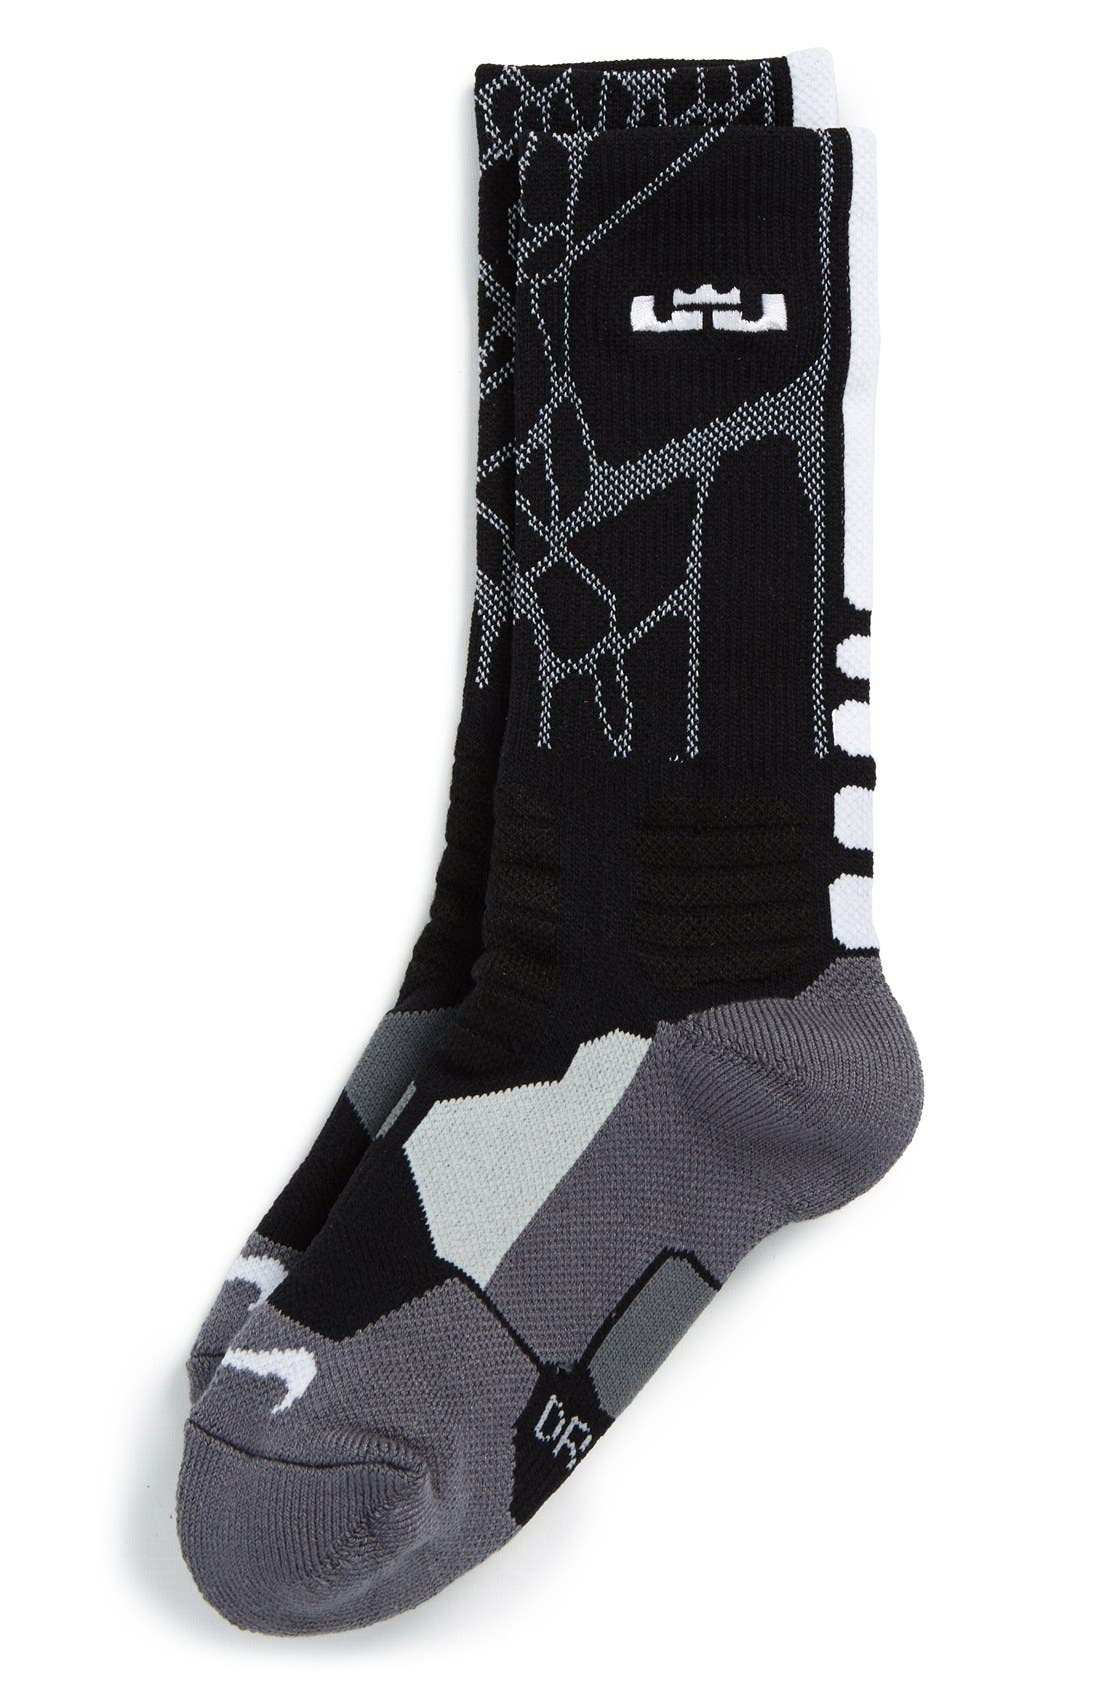 Leeds curso Circunferencia  Socks Clothing, Shoes & Accessories Nike Hyper Elite Cushioned Basketball  Crew Socks myself.co.ls